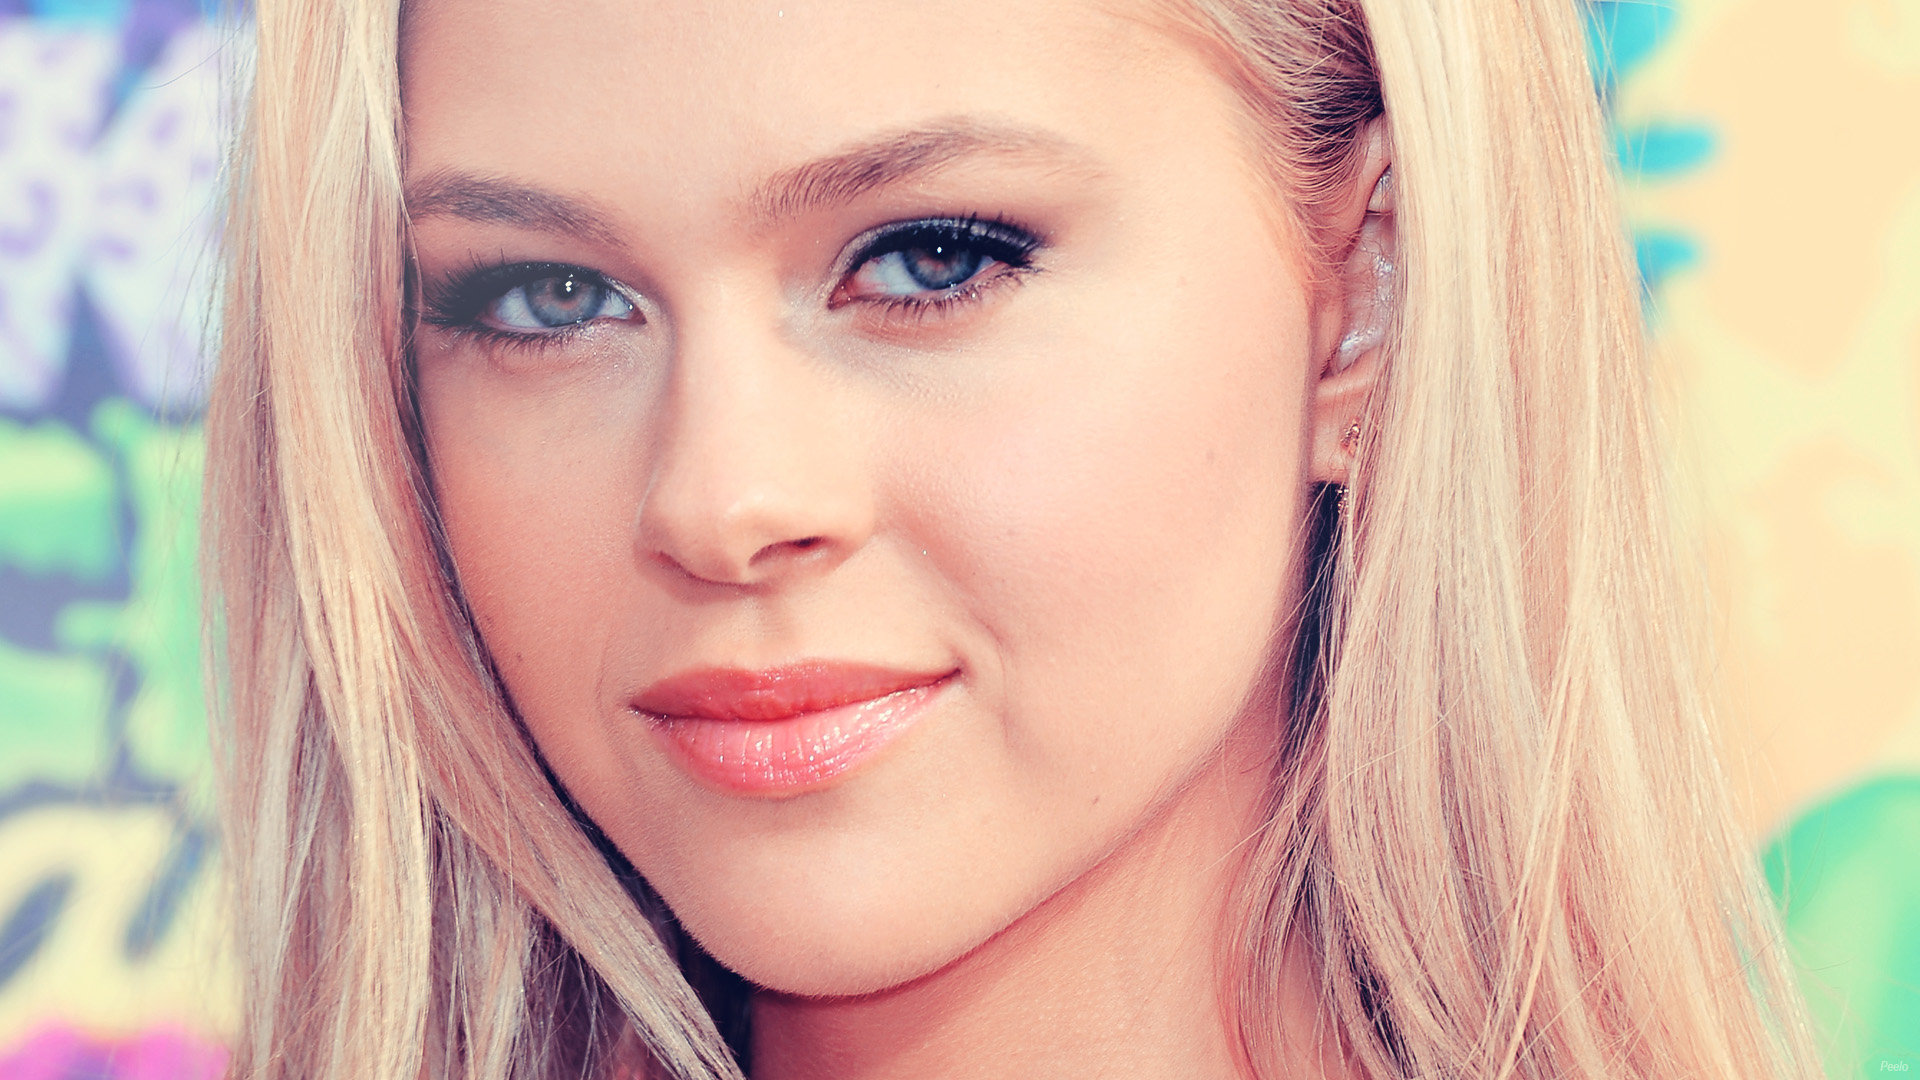 Free download Nicola Peltz background ID:130524 full hd 1920x1080 for computer